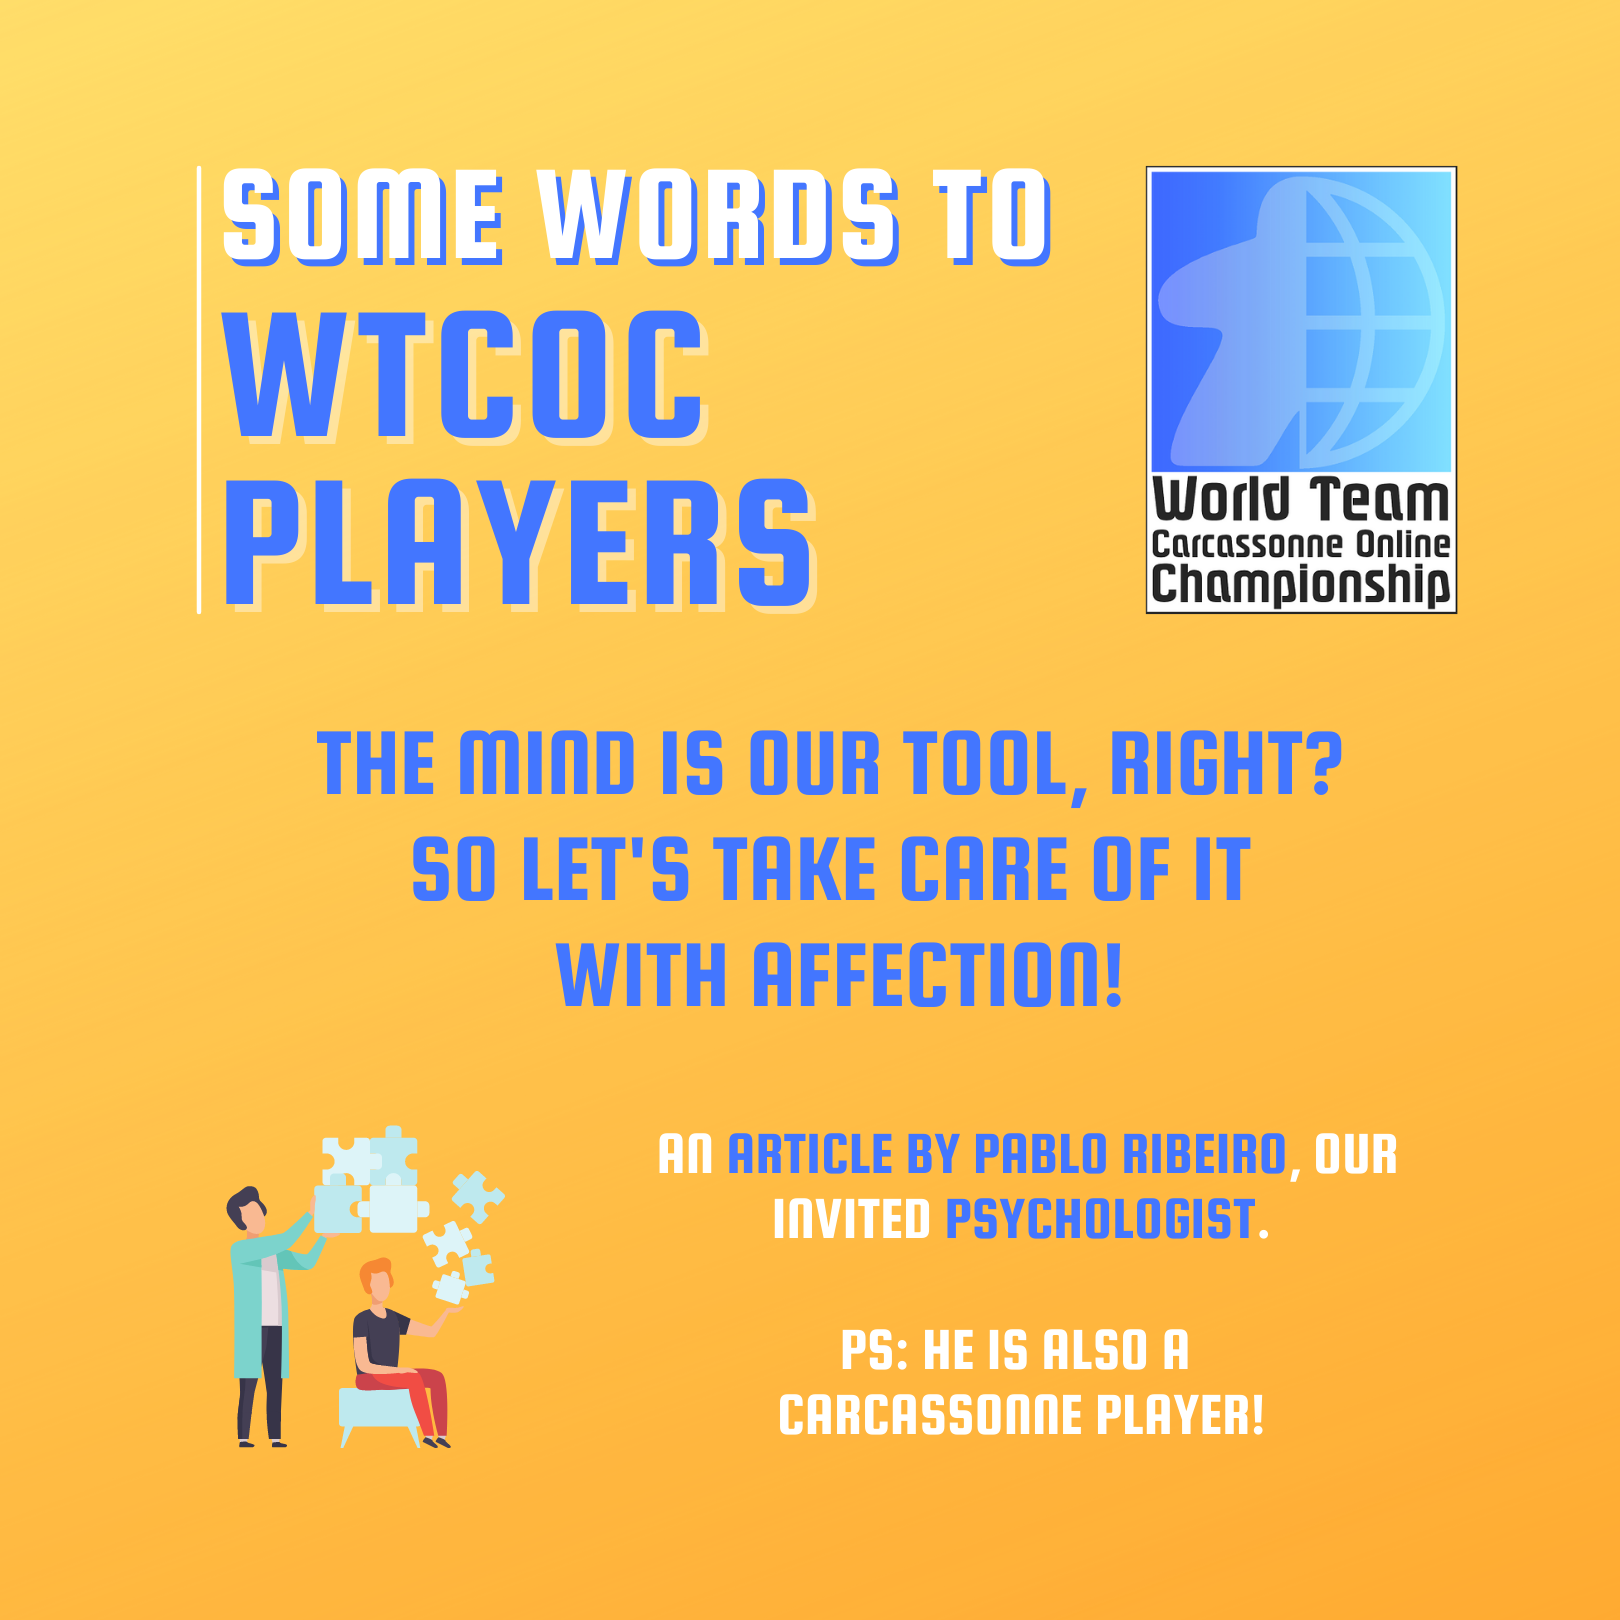 WORDS WTCOC PLAYERS